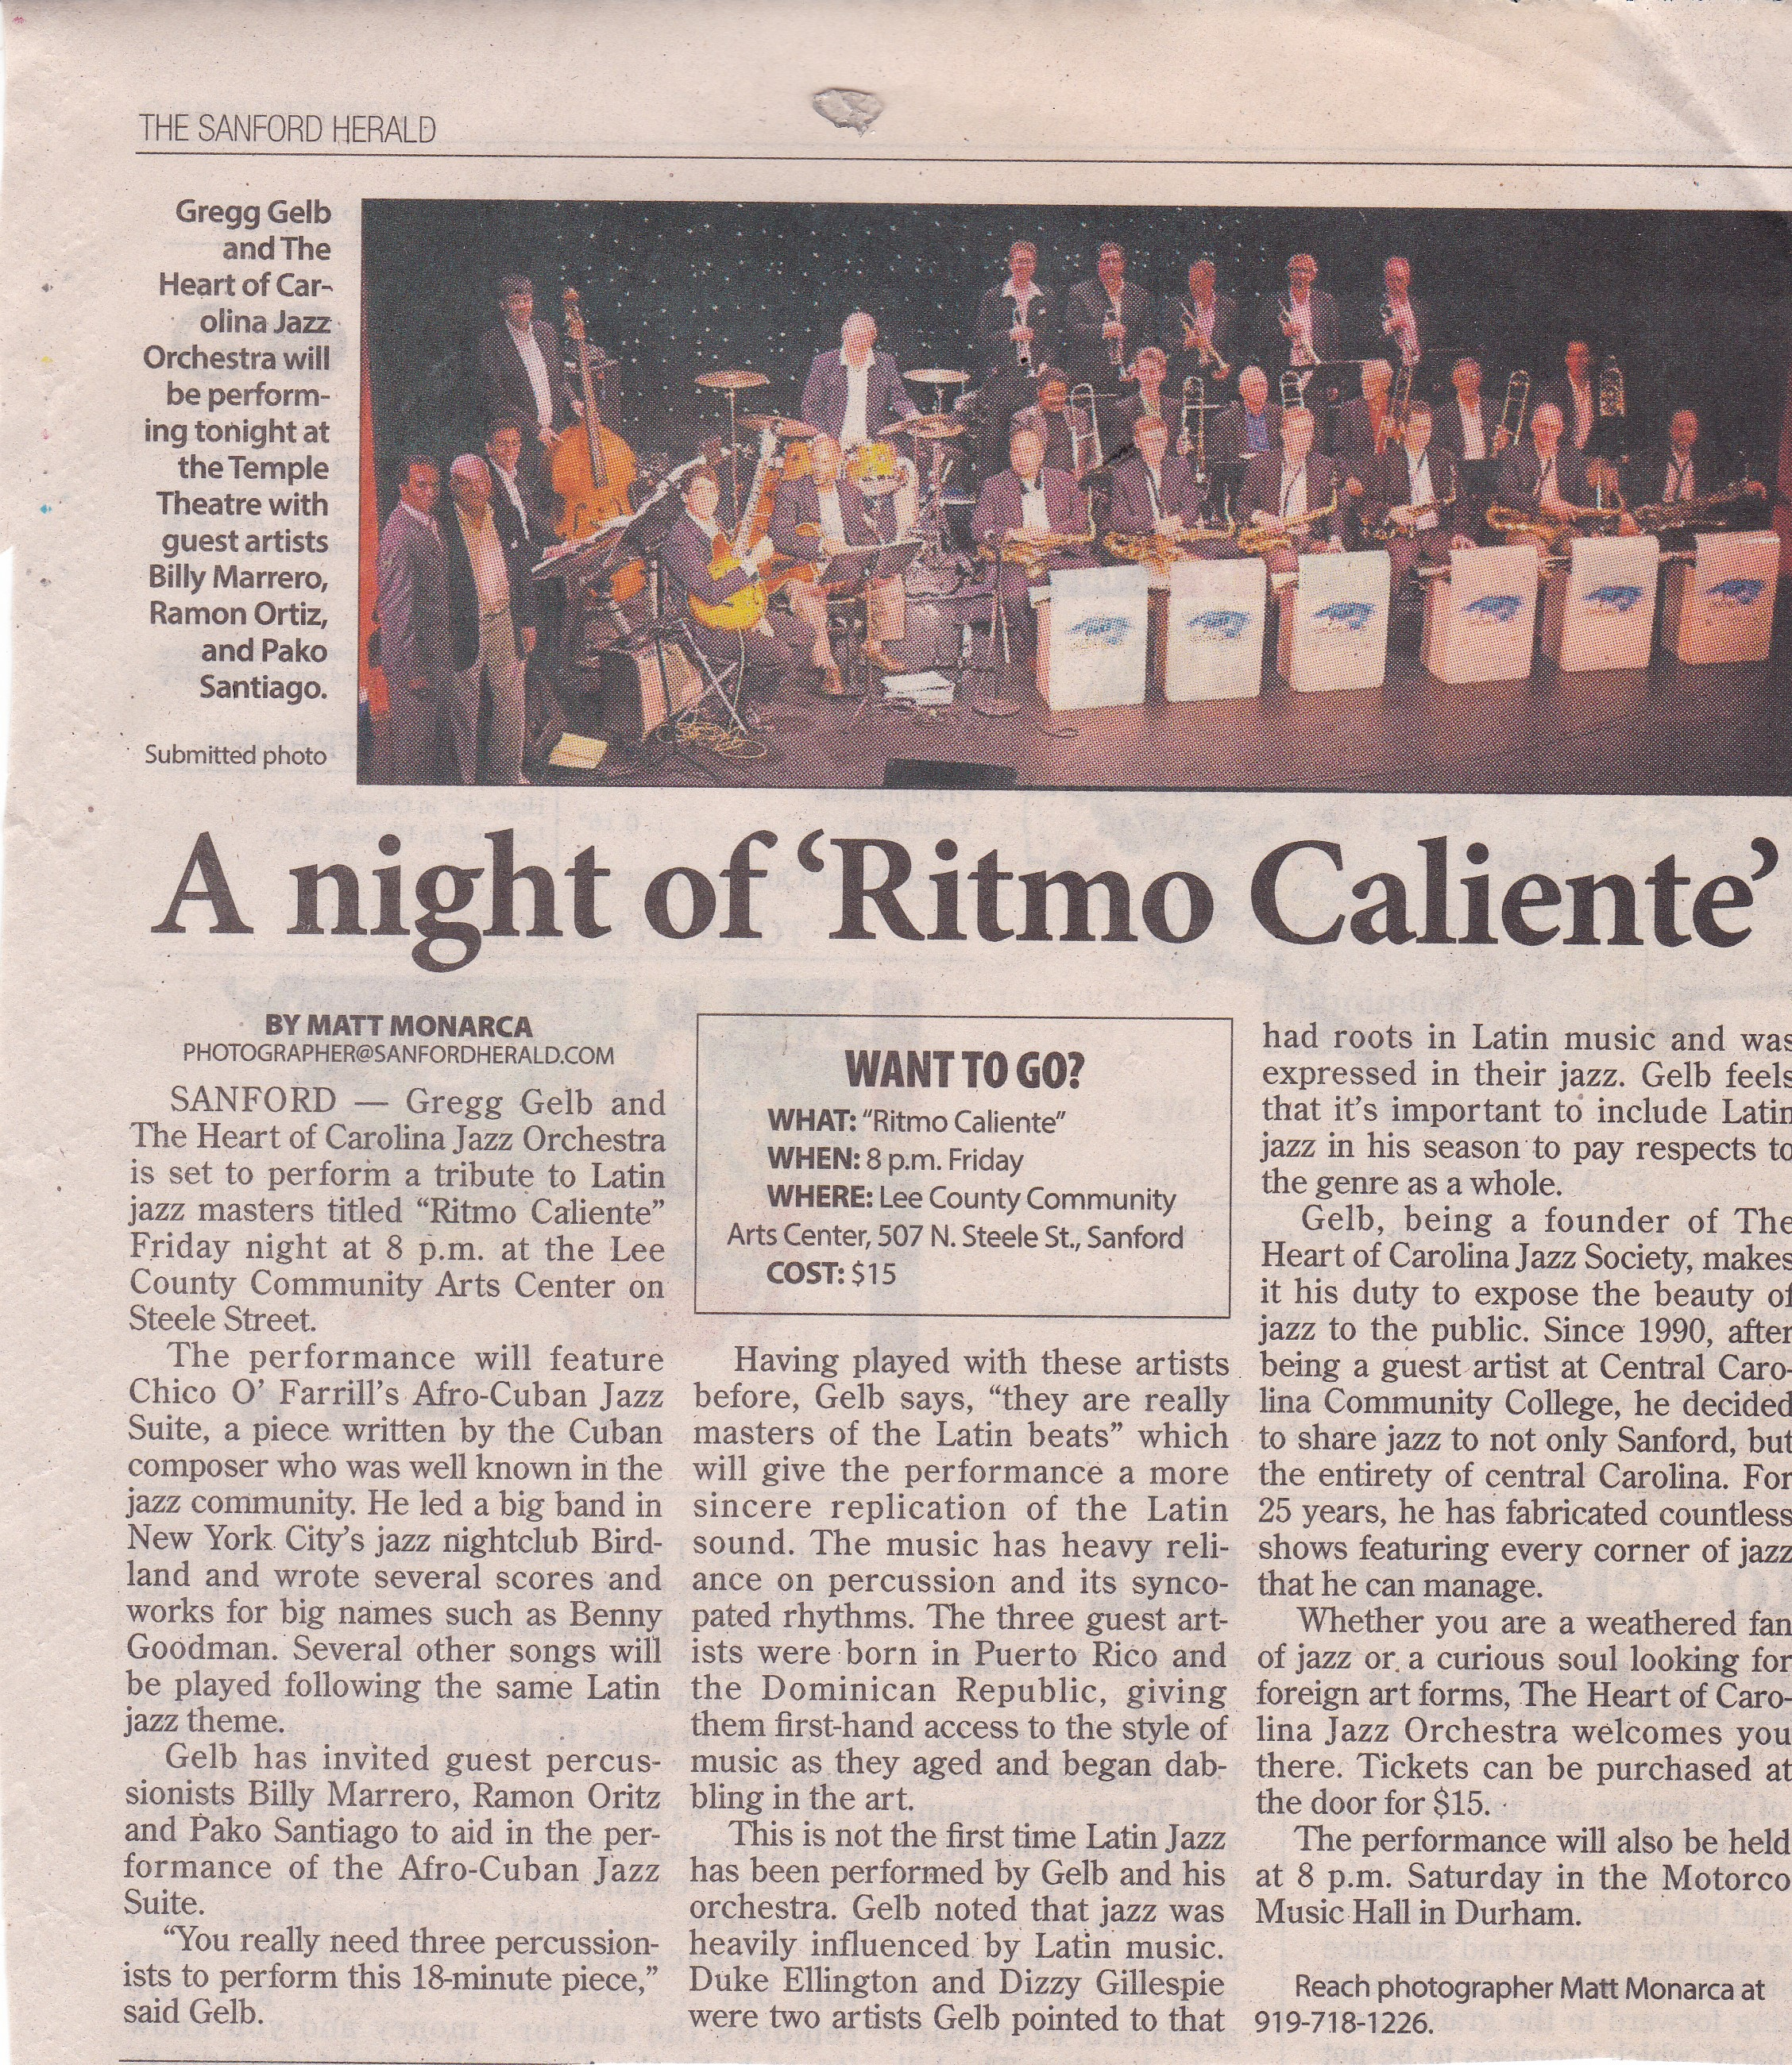 HOC-Ritmo-Caliente-Herald-article